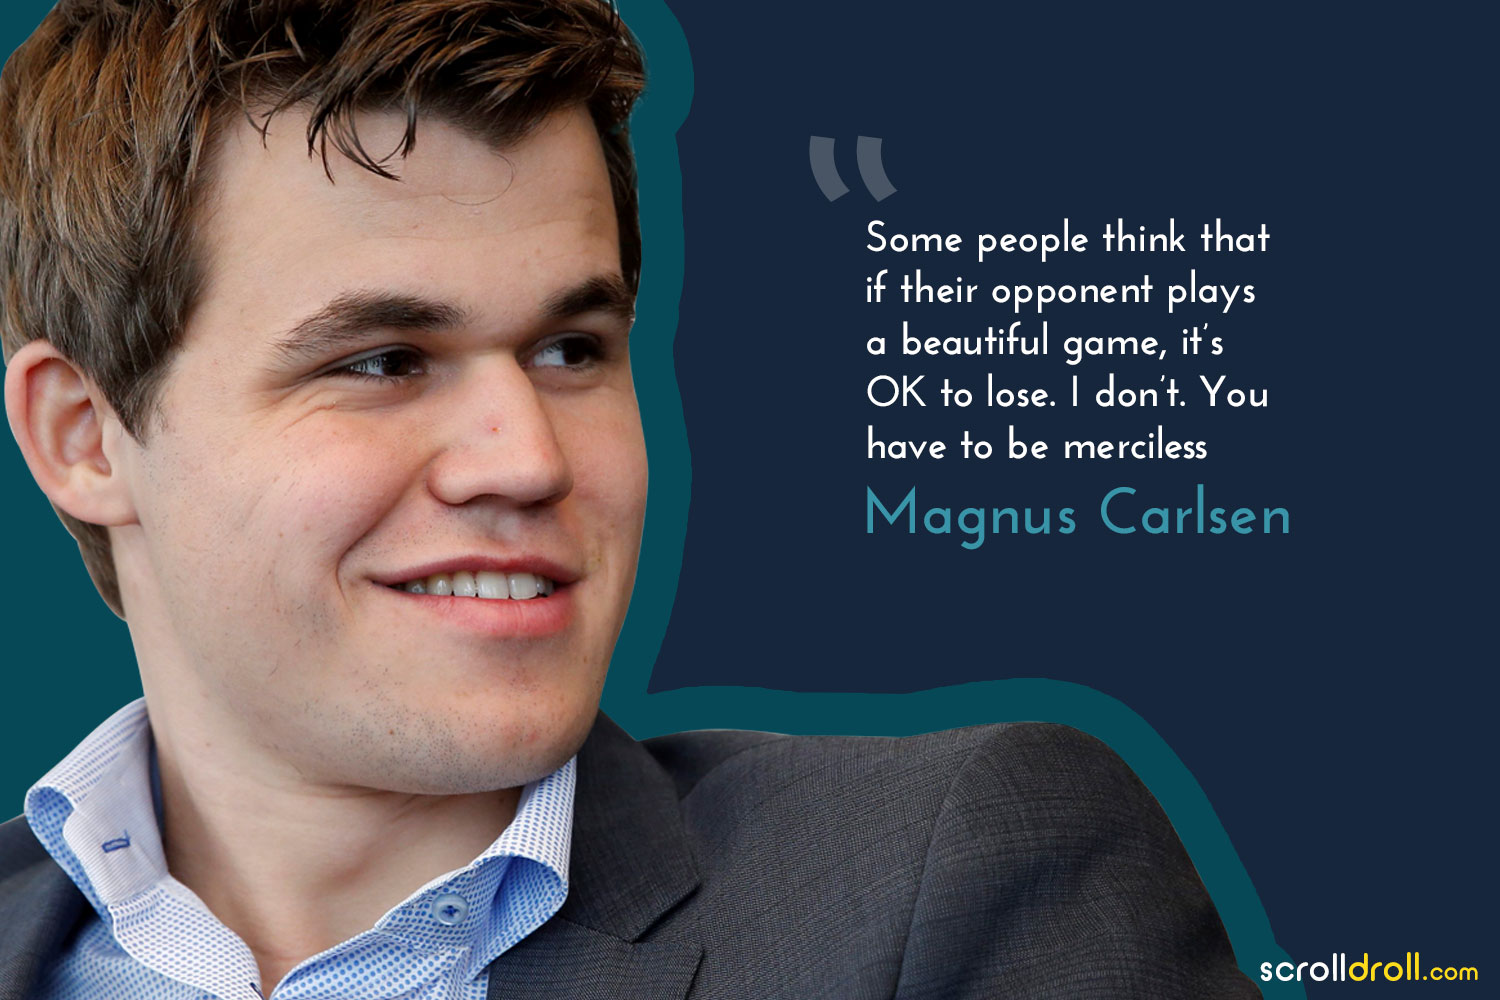 Powerful Quotes By Successful People-Magnus carlsen quotes